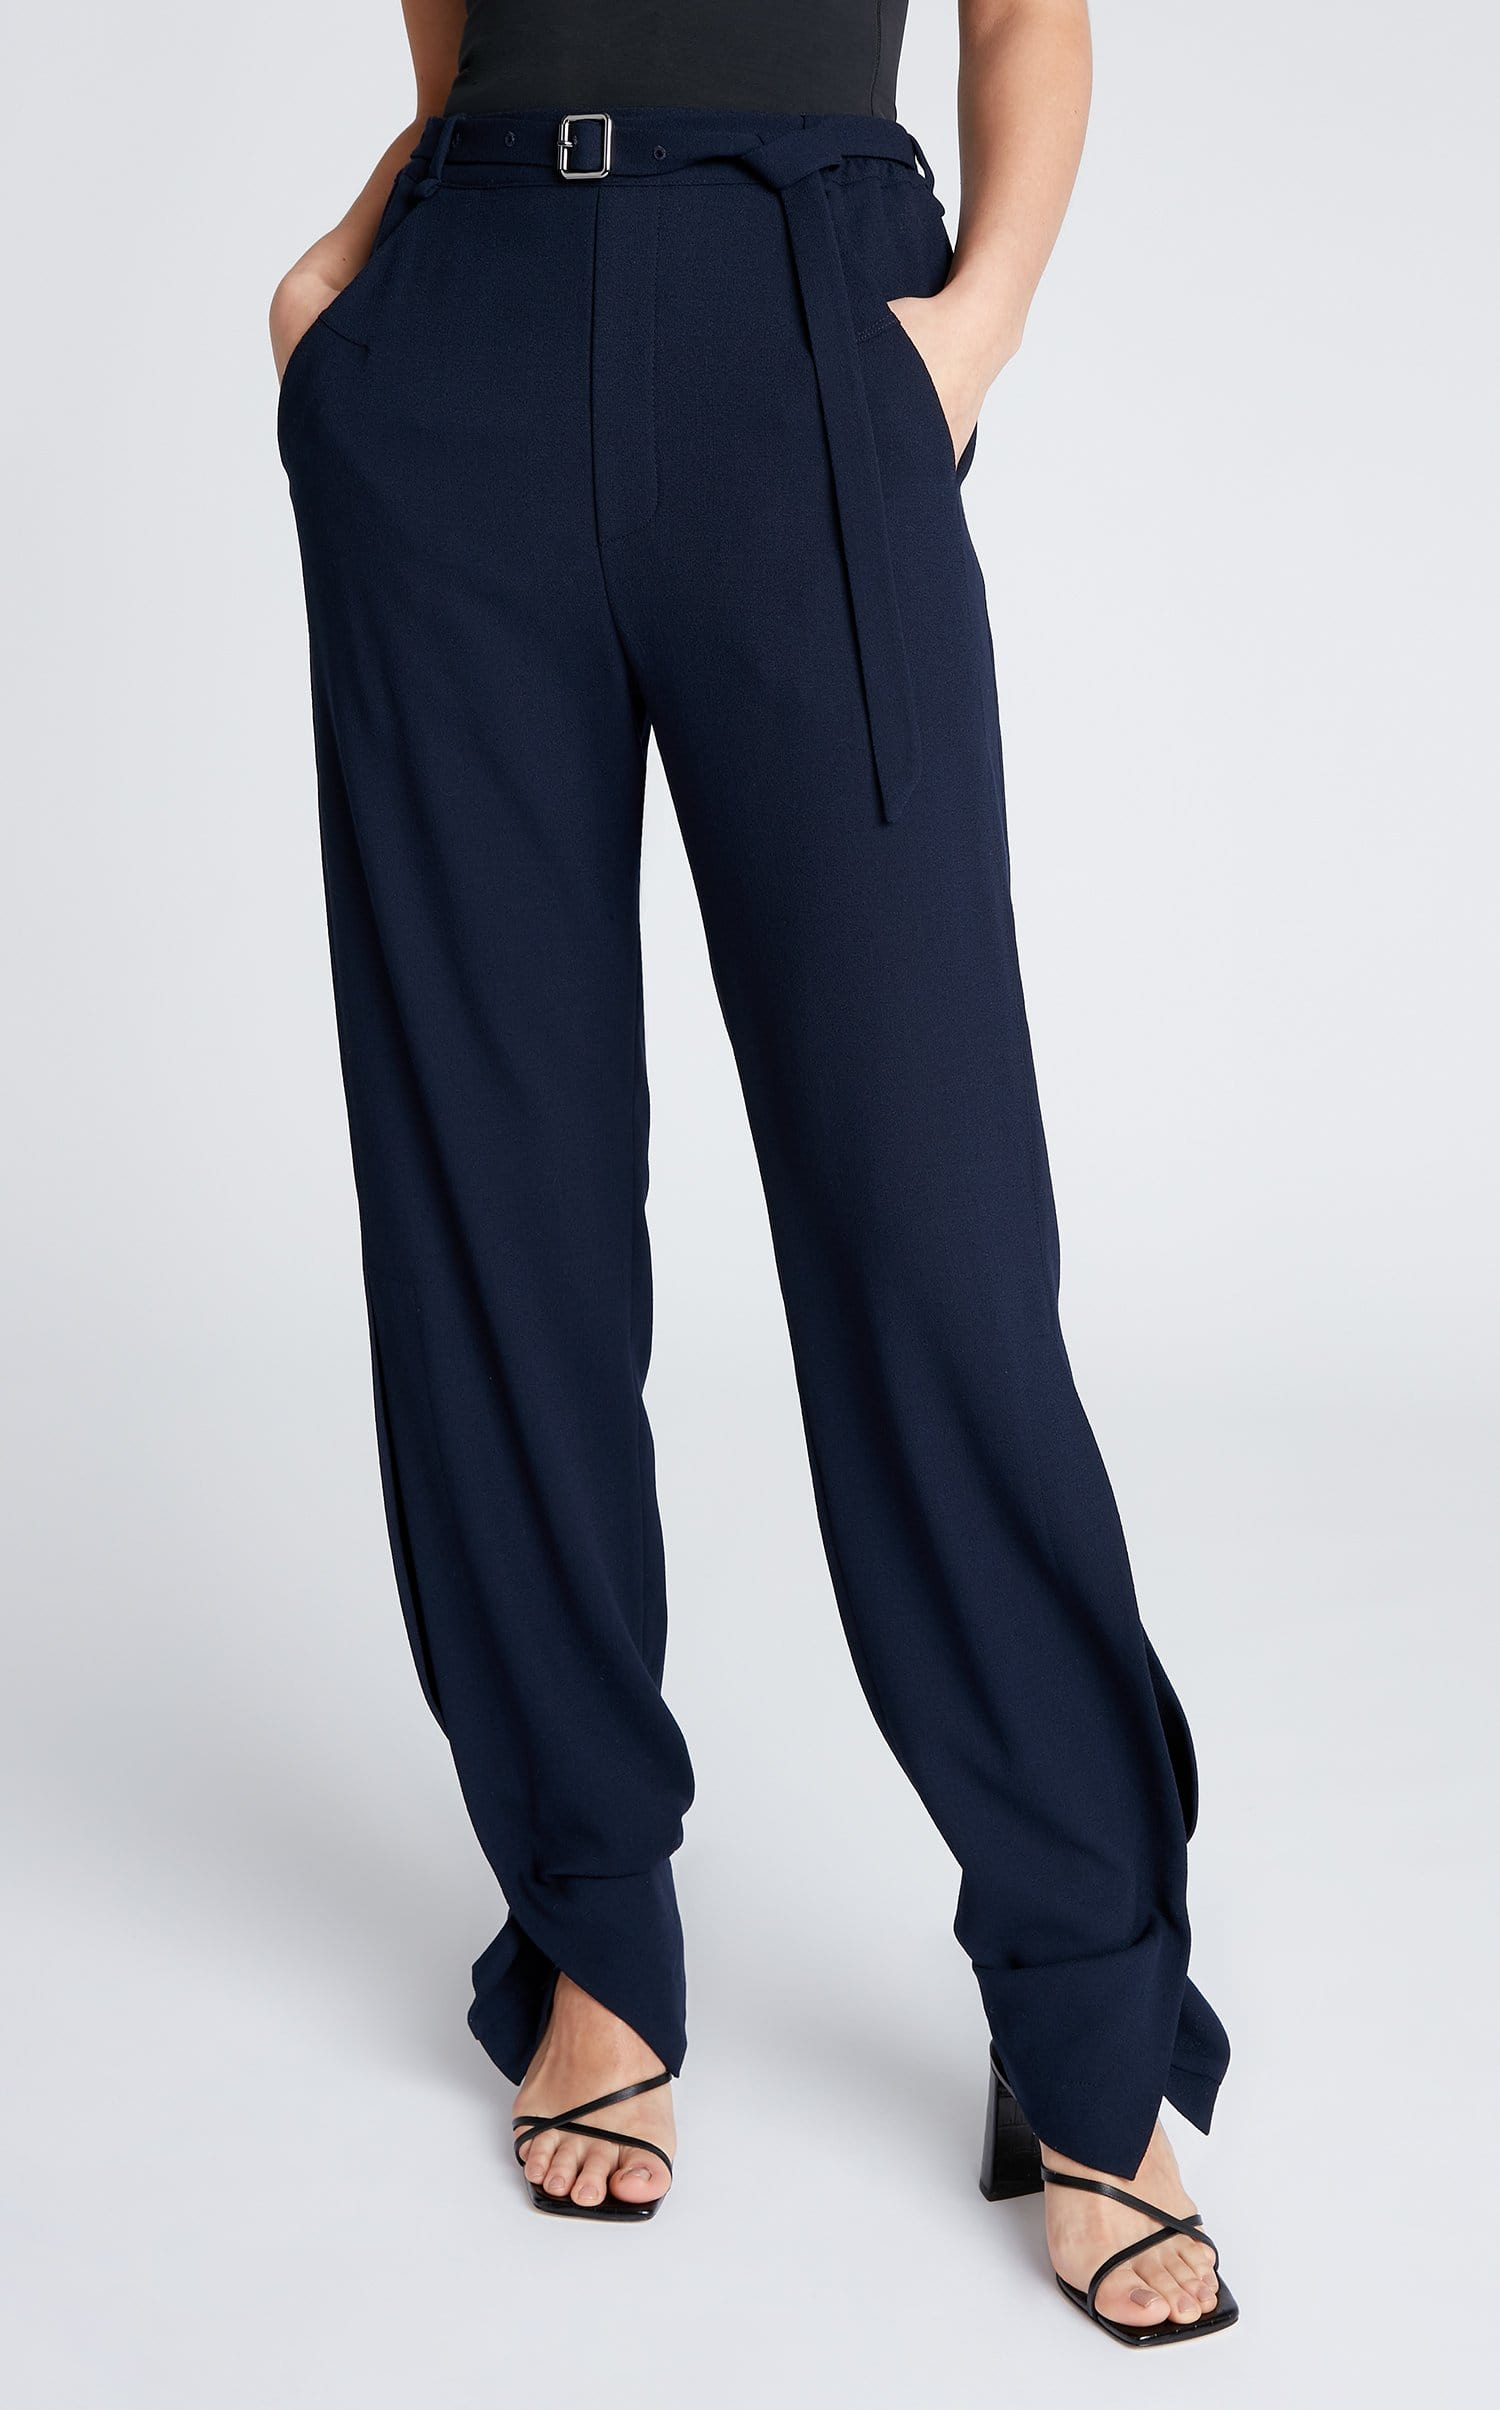 Askern Trouser